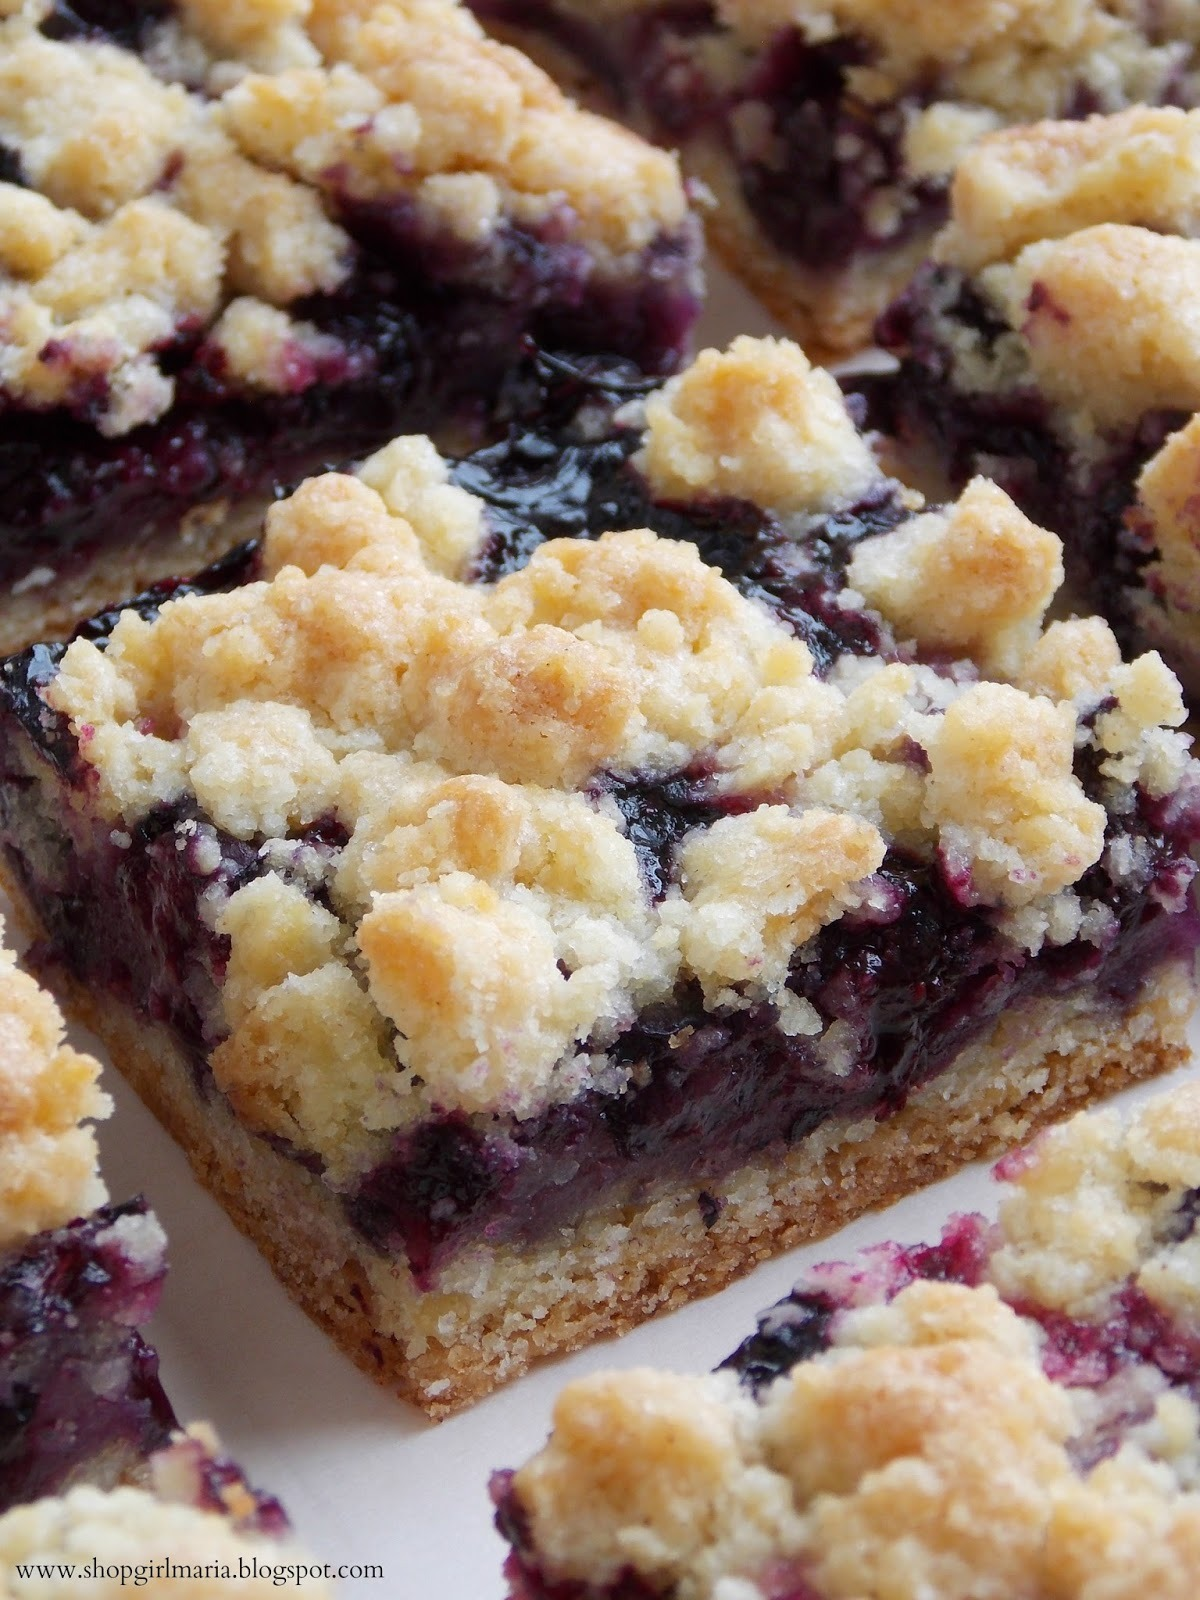 Recipe: Blueberry Crumb Bars